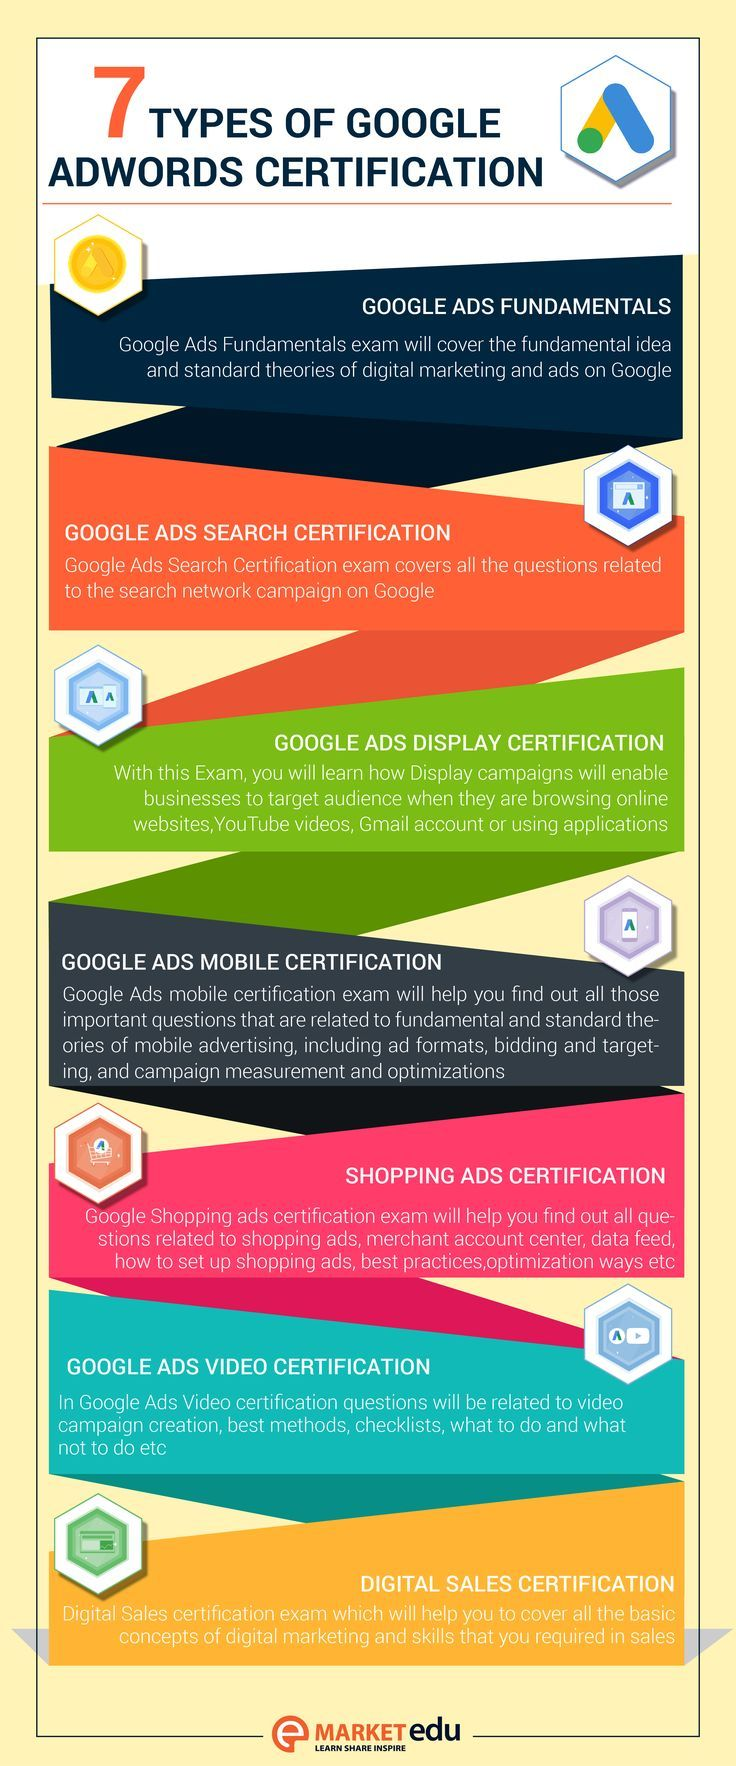 7 Types Of Google Adwords Digital Marketing Google Ads